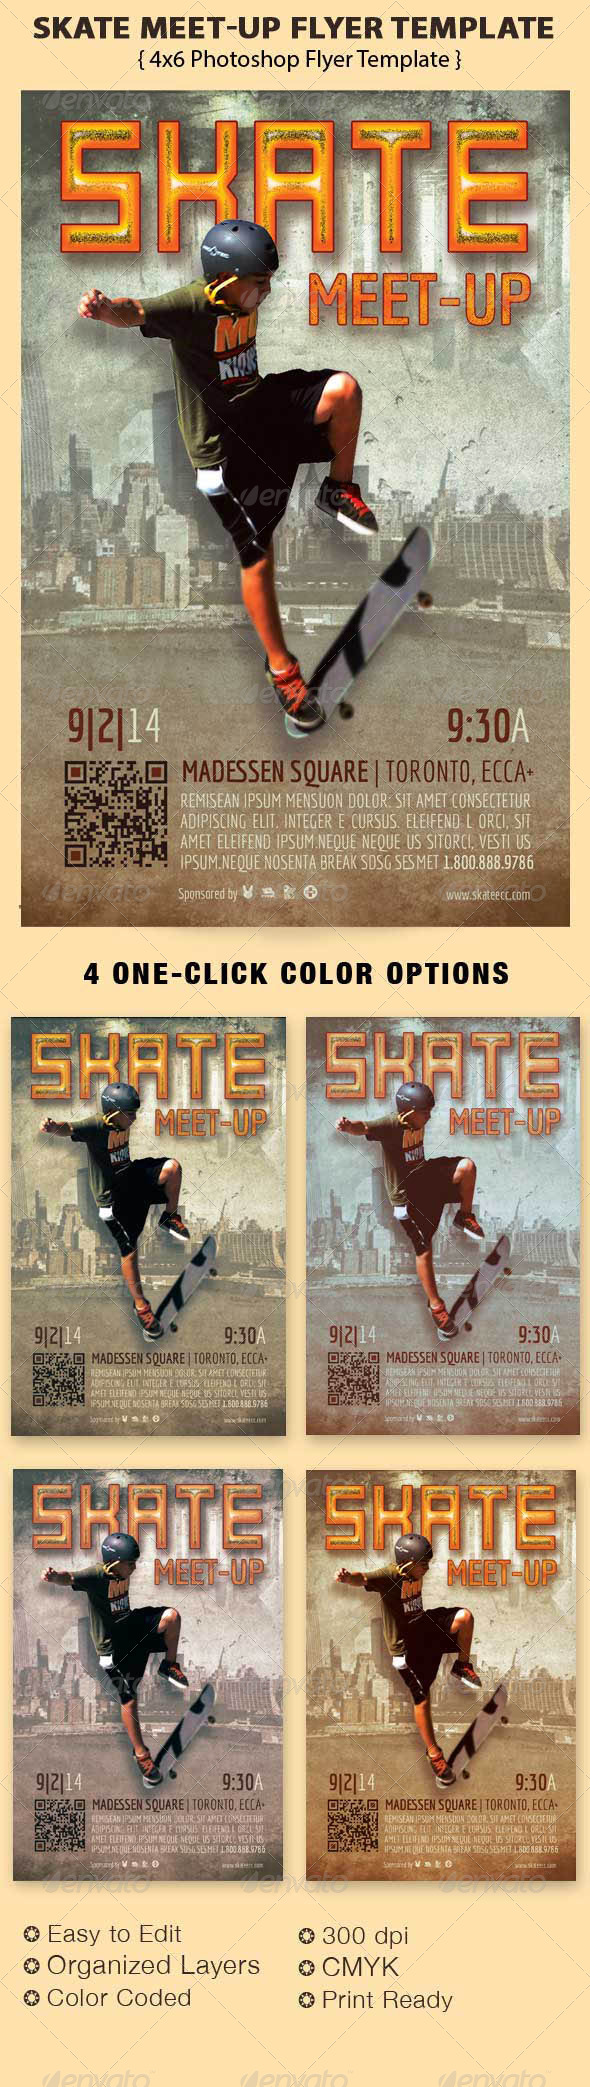 GraphicRiver Skate Meet-Up Flyer Template 6656160